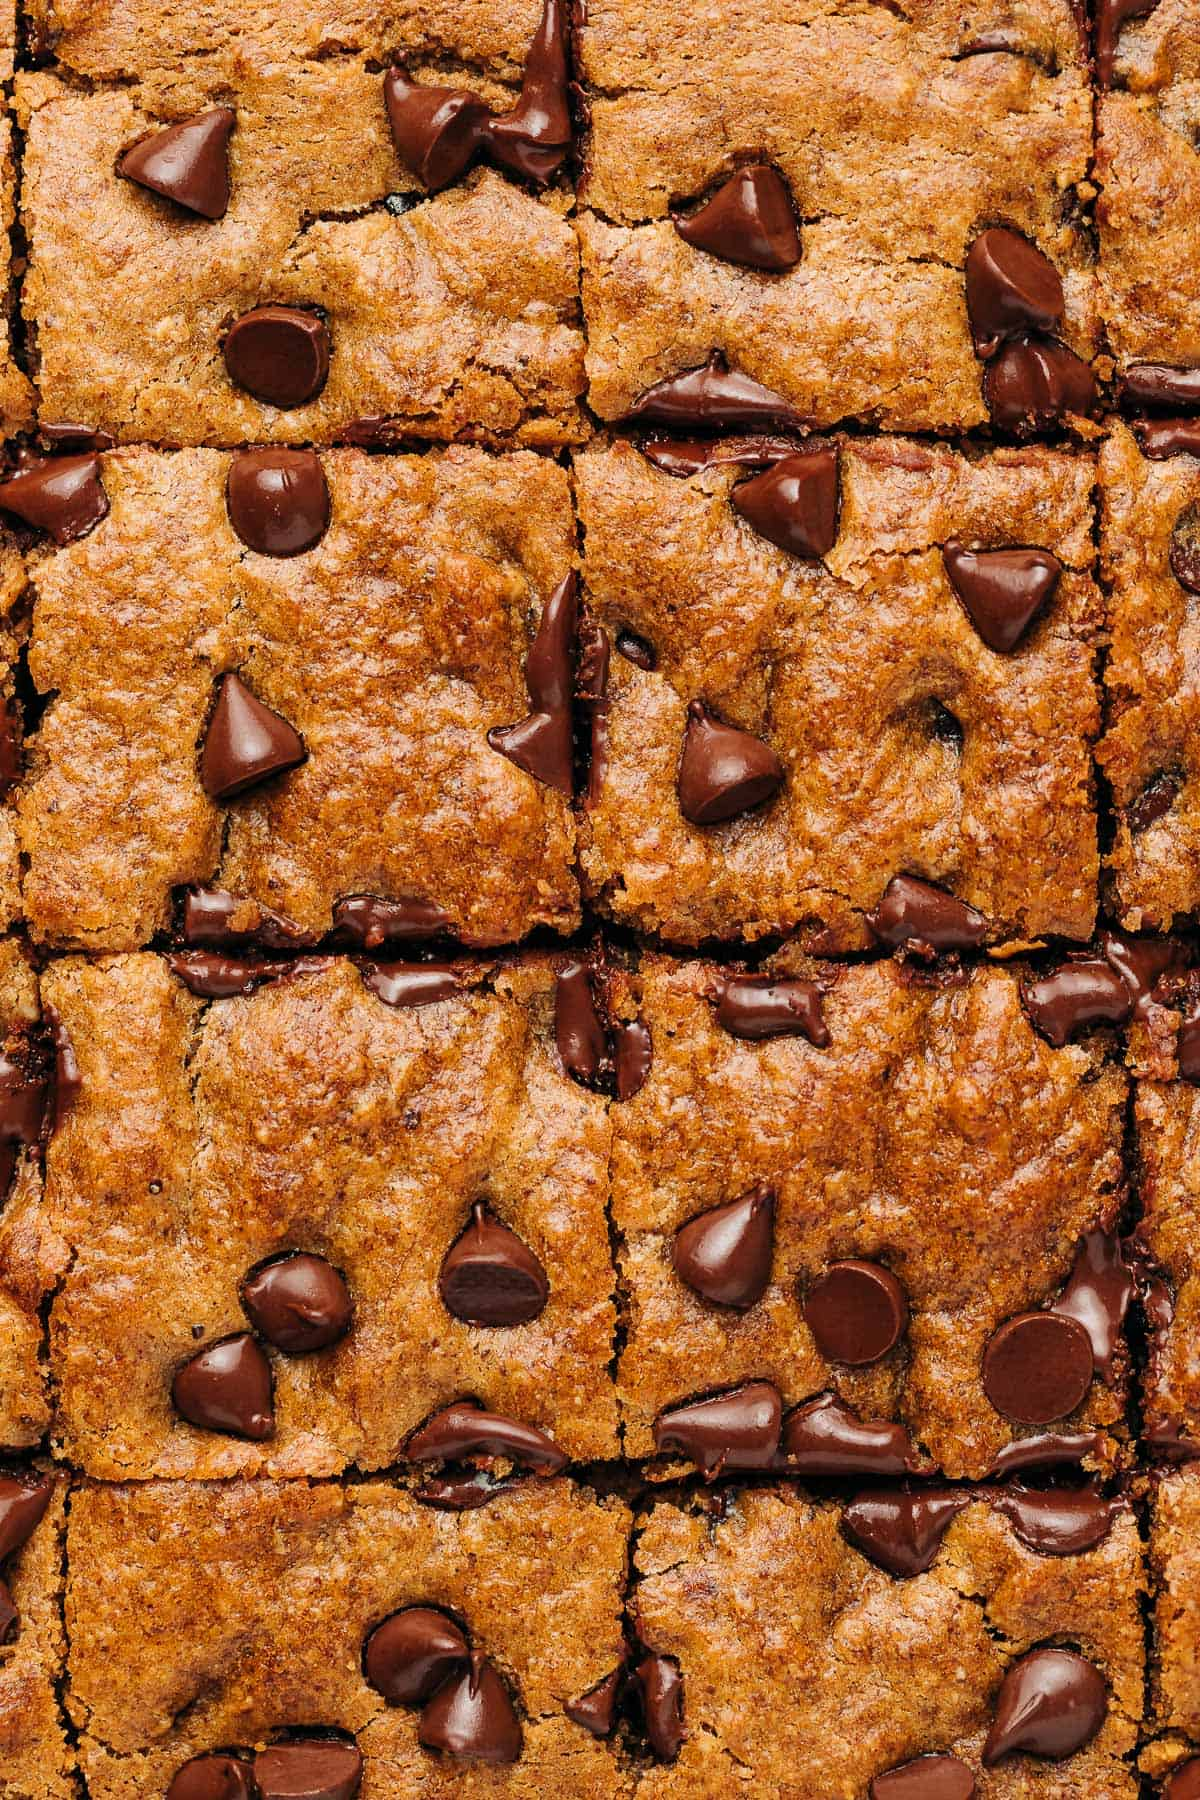 Chocolate chip banana bread cut into squares.